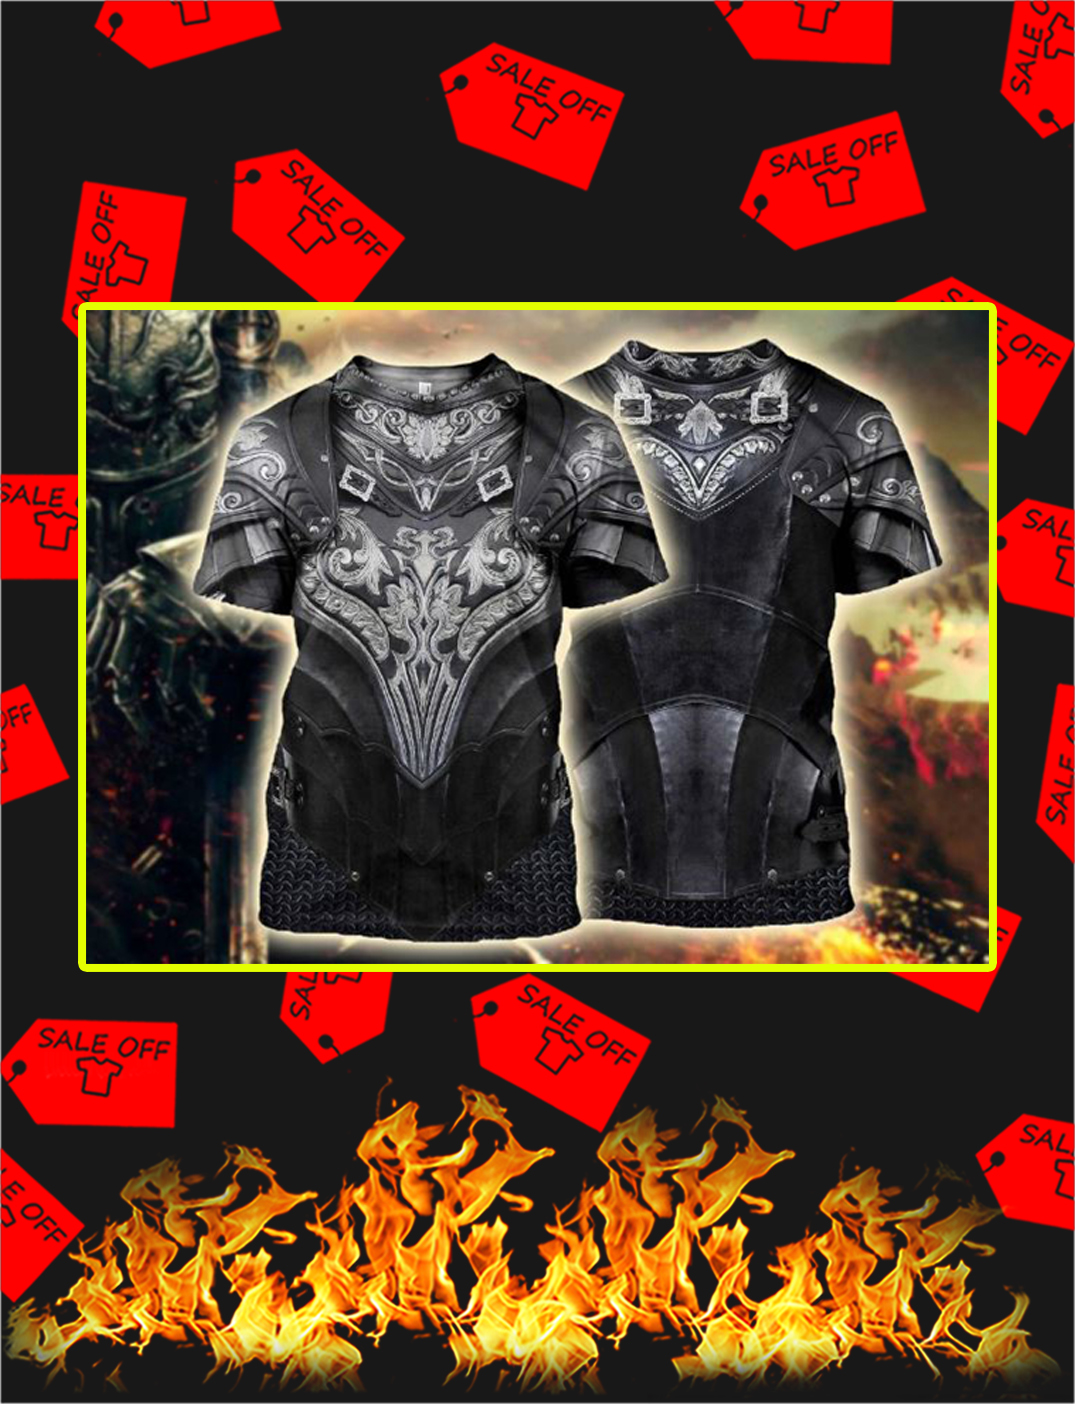 Chainmail Knight Armor 3D Printed Shirt